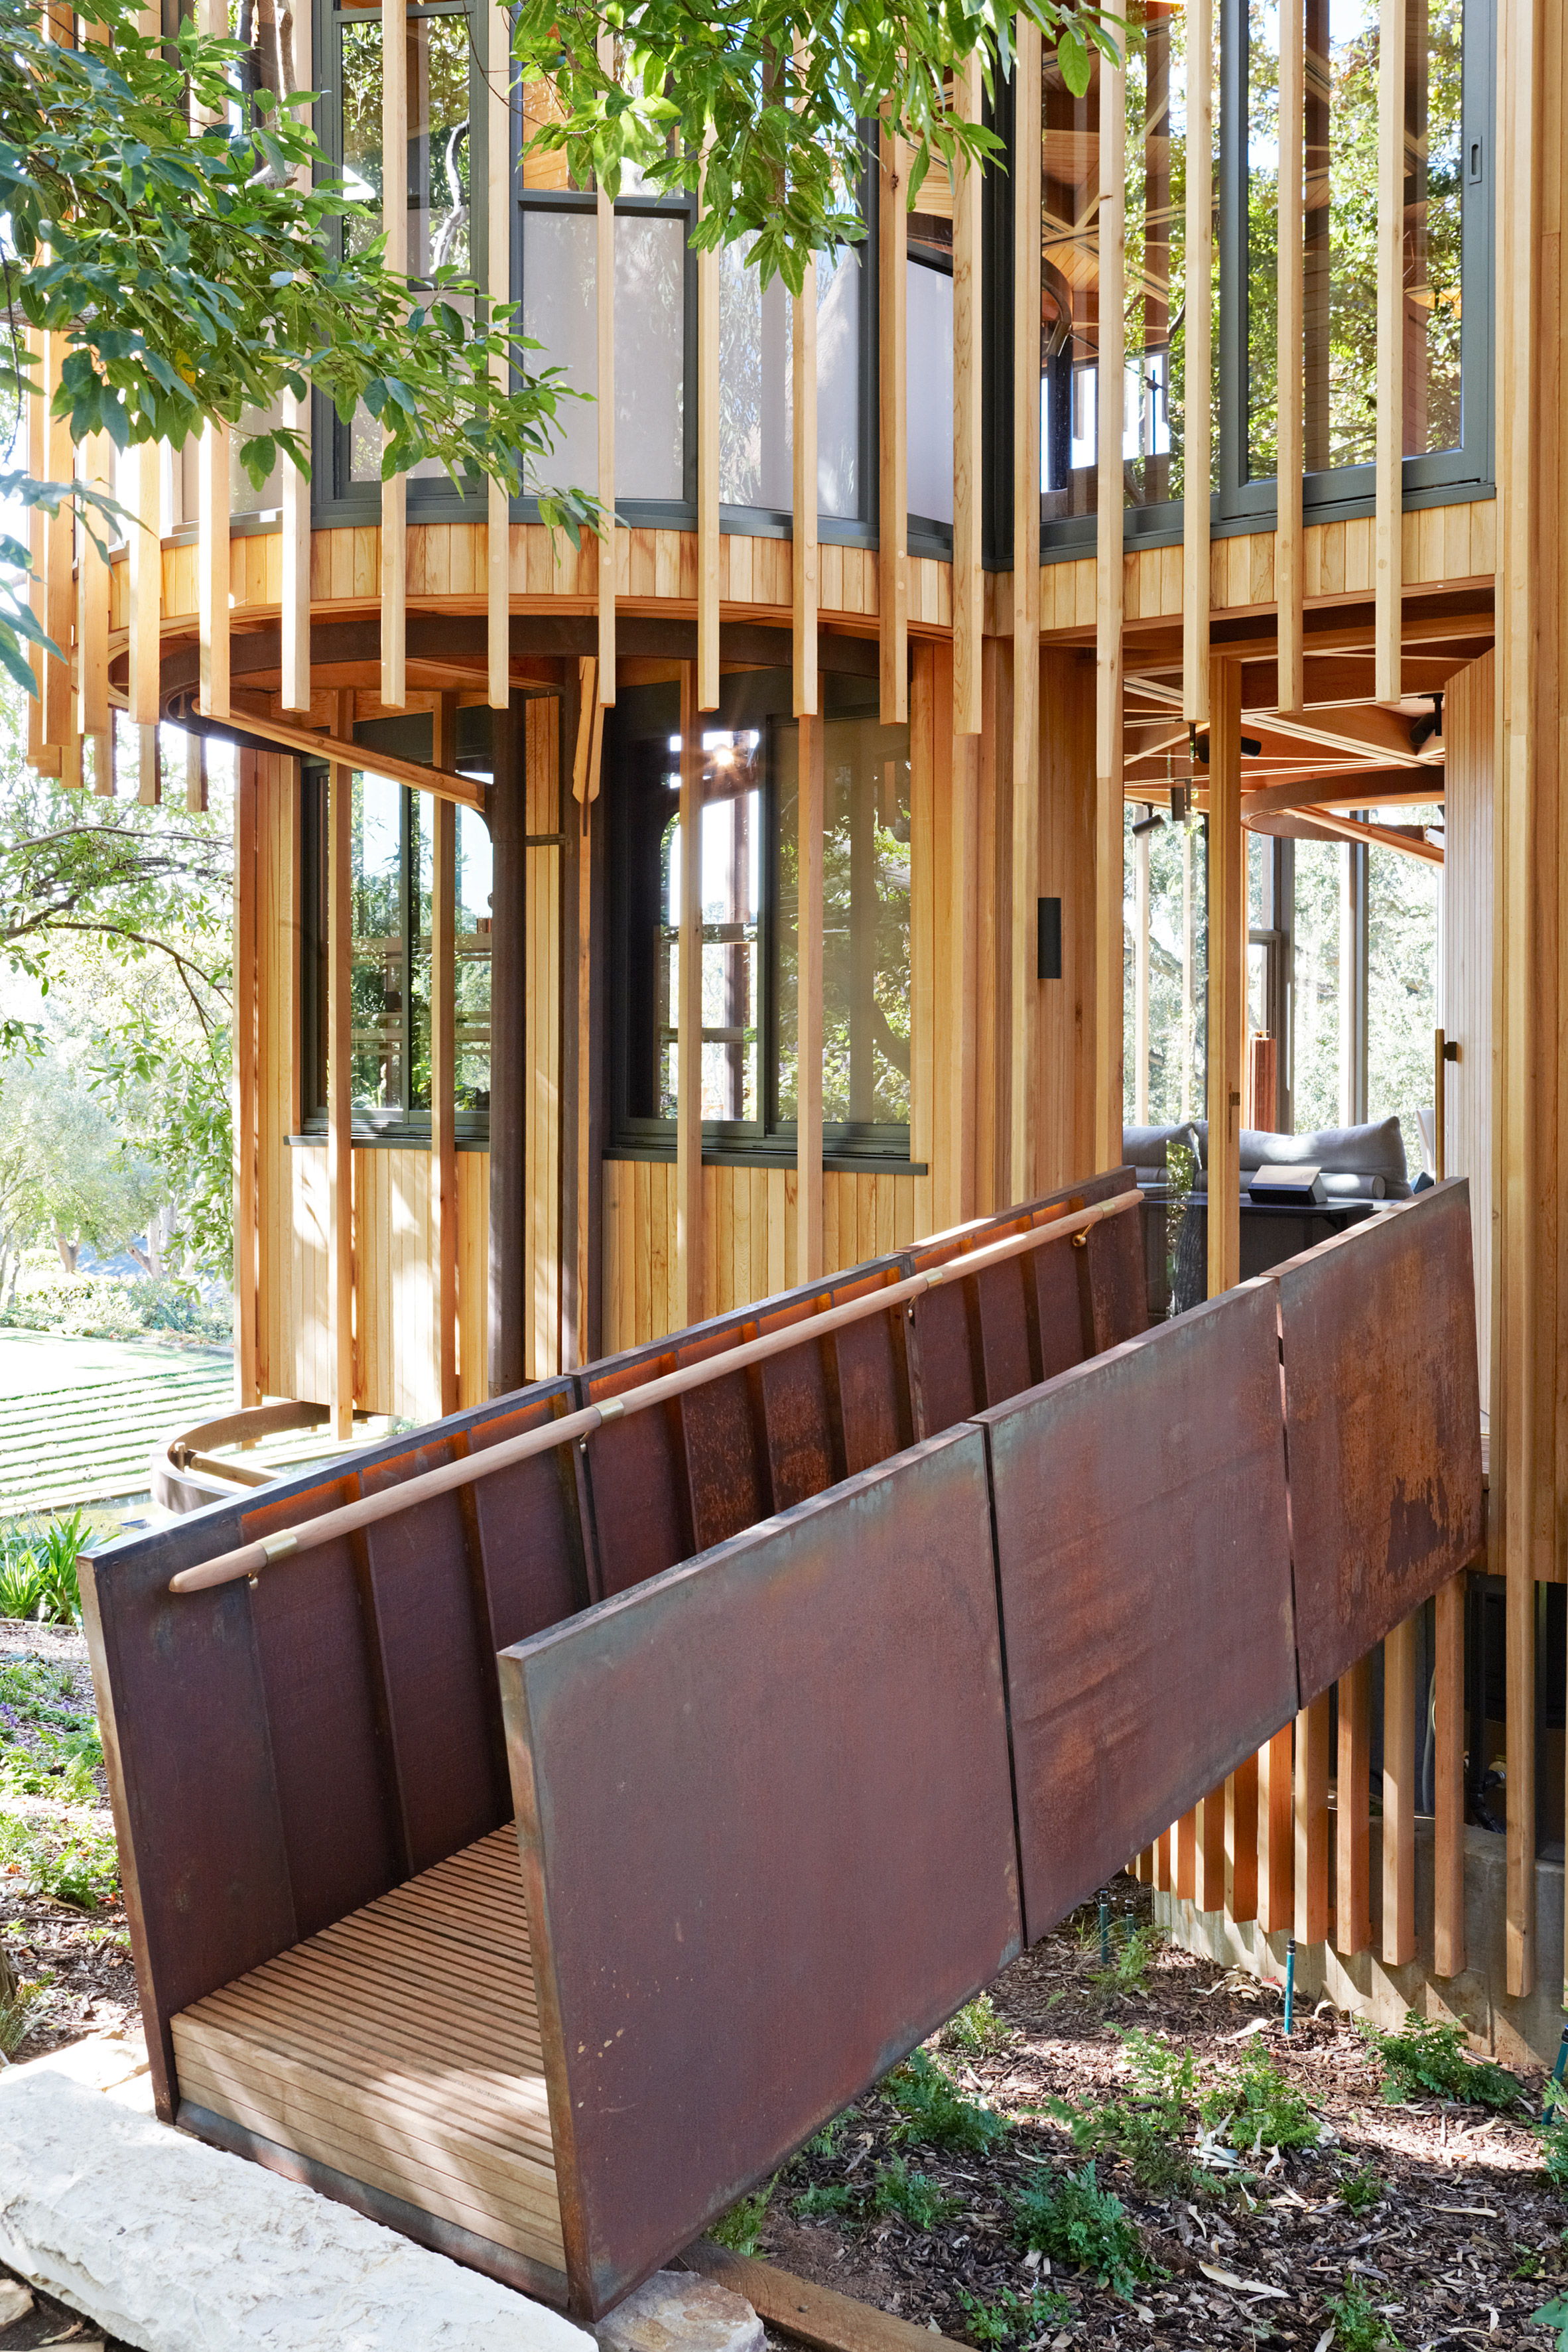 paarman-tree-house-by-mv-architecture-residential_dezeen_2364_col_19.jpg